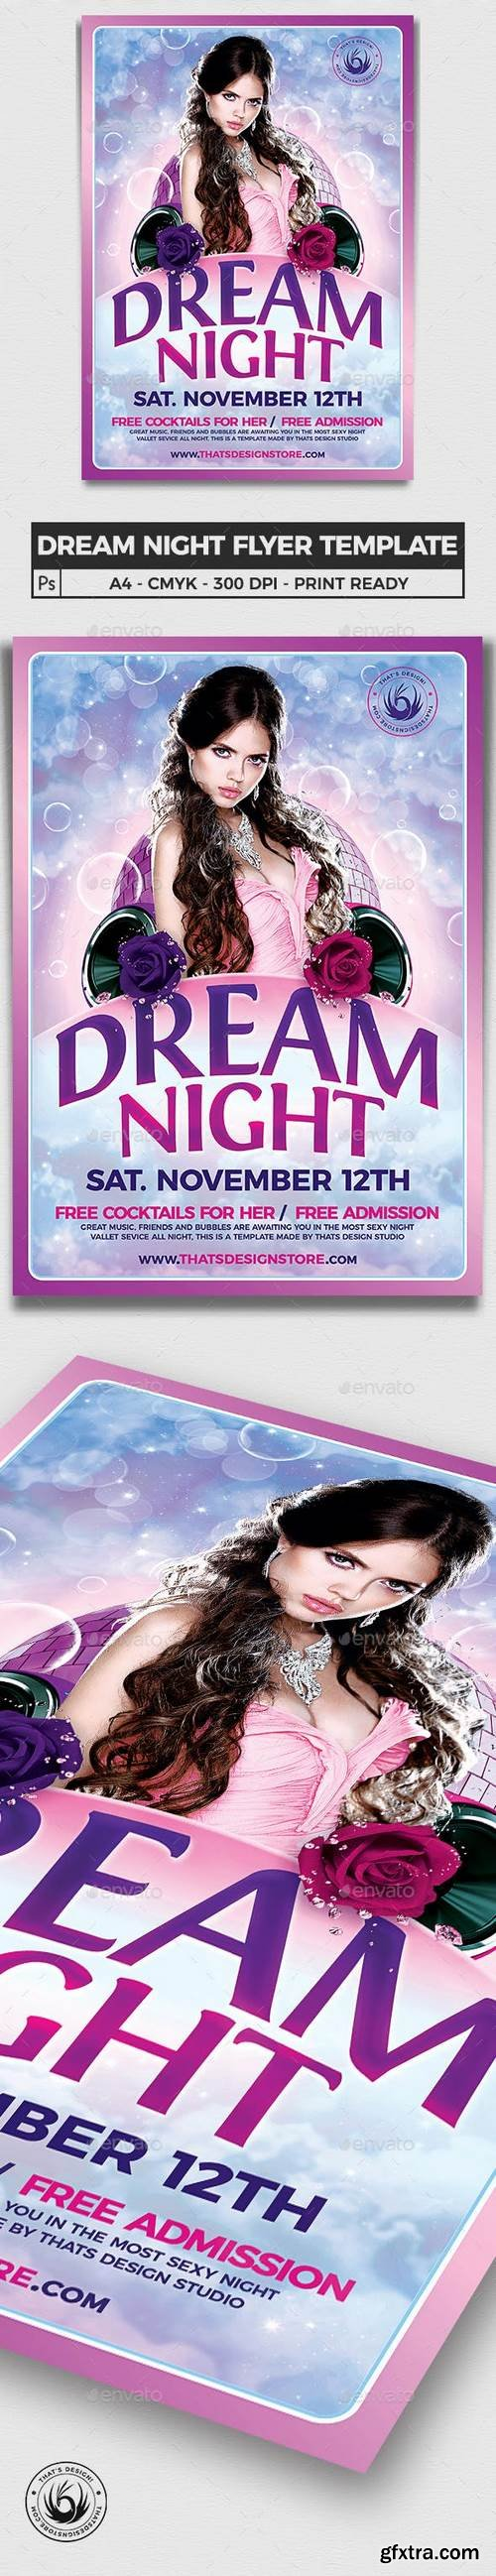 Graphicriver - Dream Night Flyer Template 15331912 - Updated !